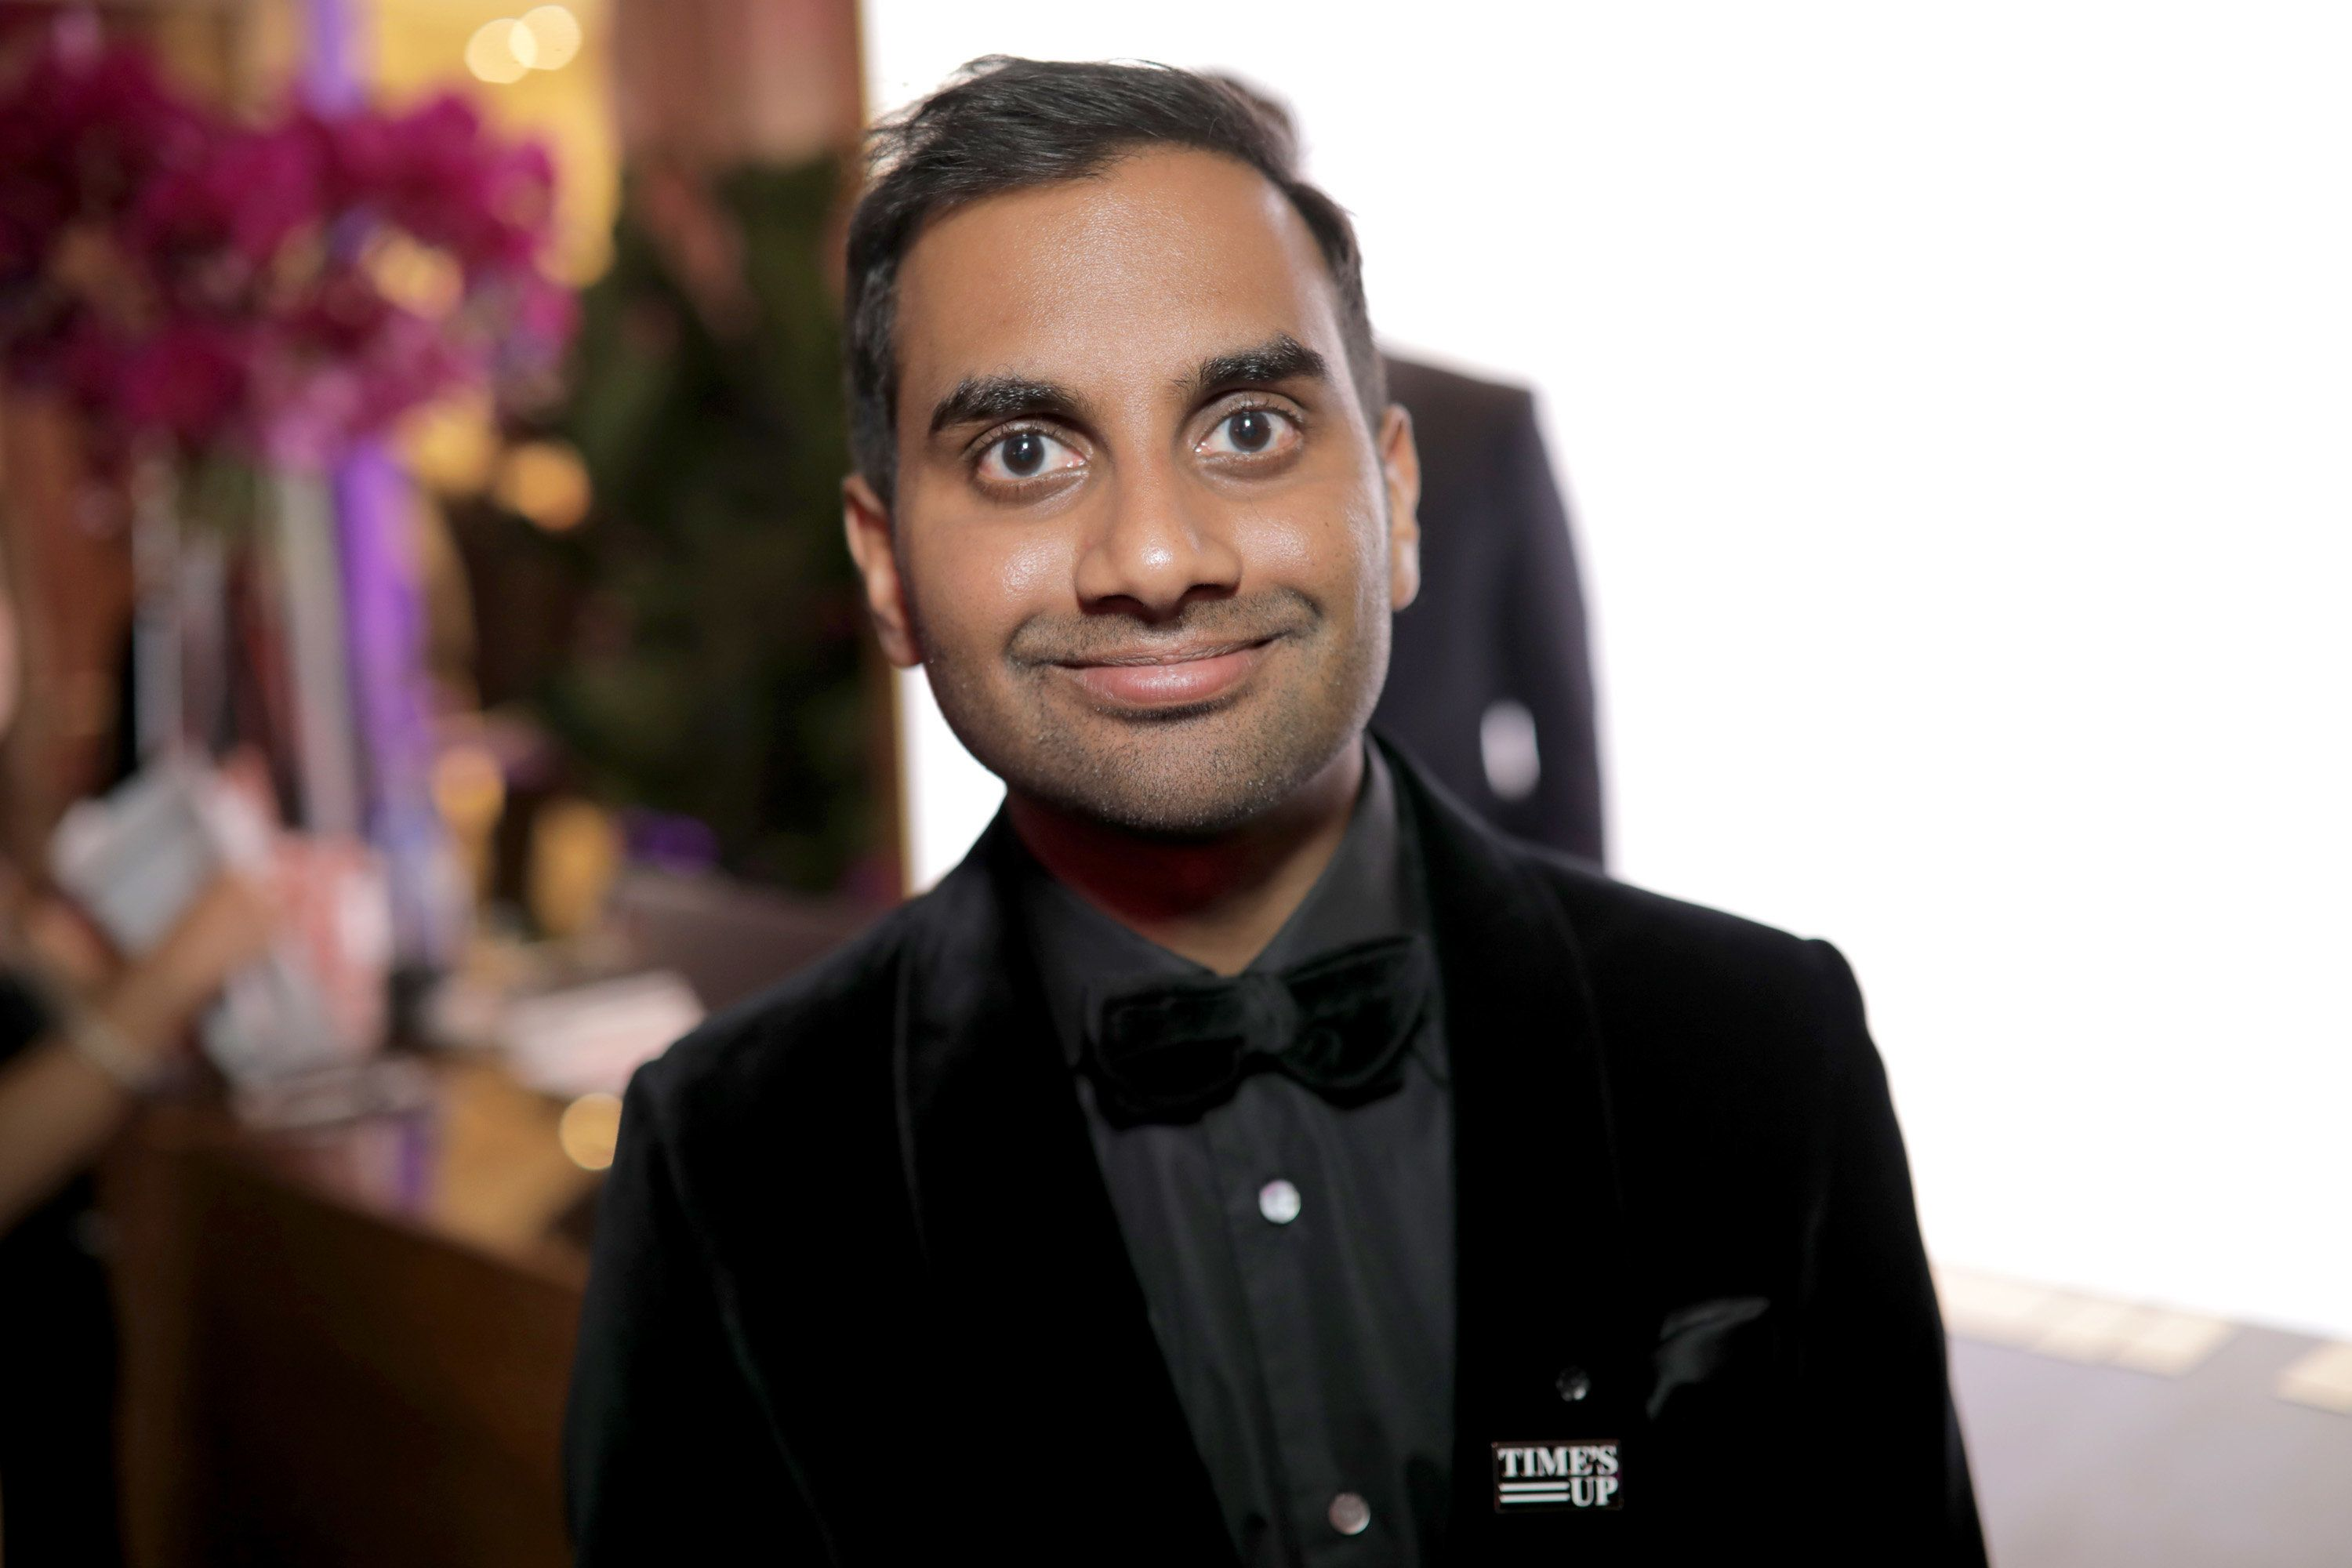 Sex date with comedian Aziz Ansari turns into humiliation horror, 'revenge porn'